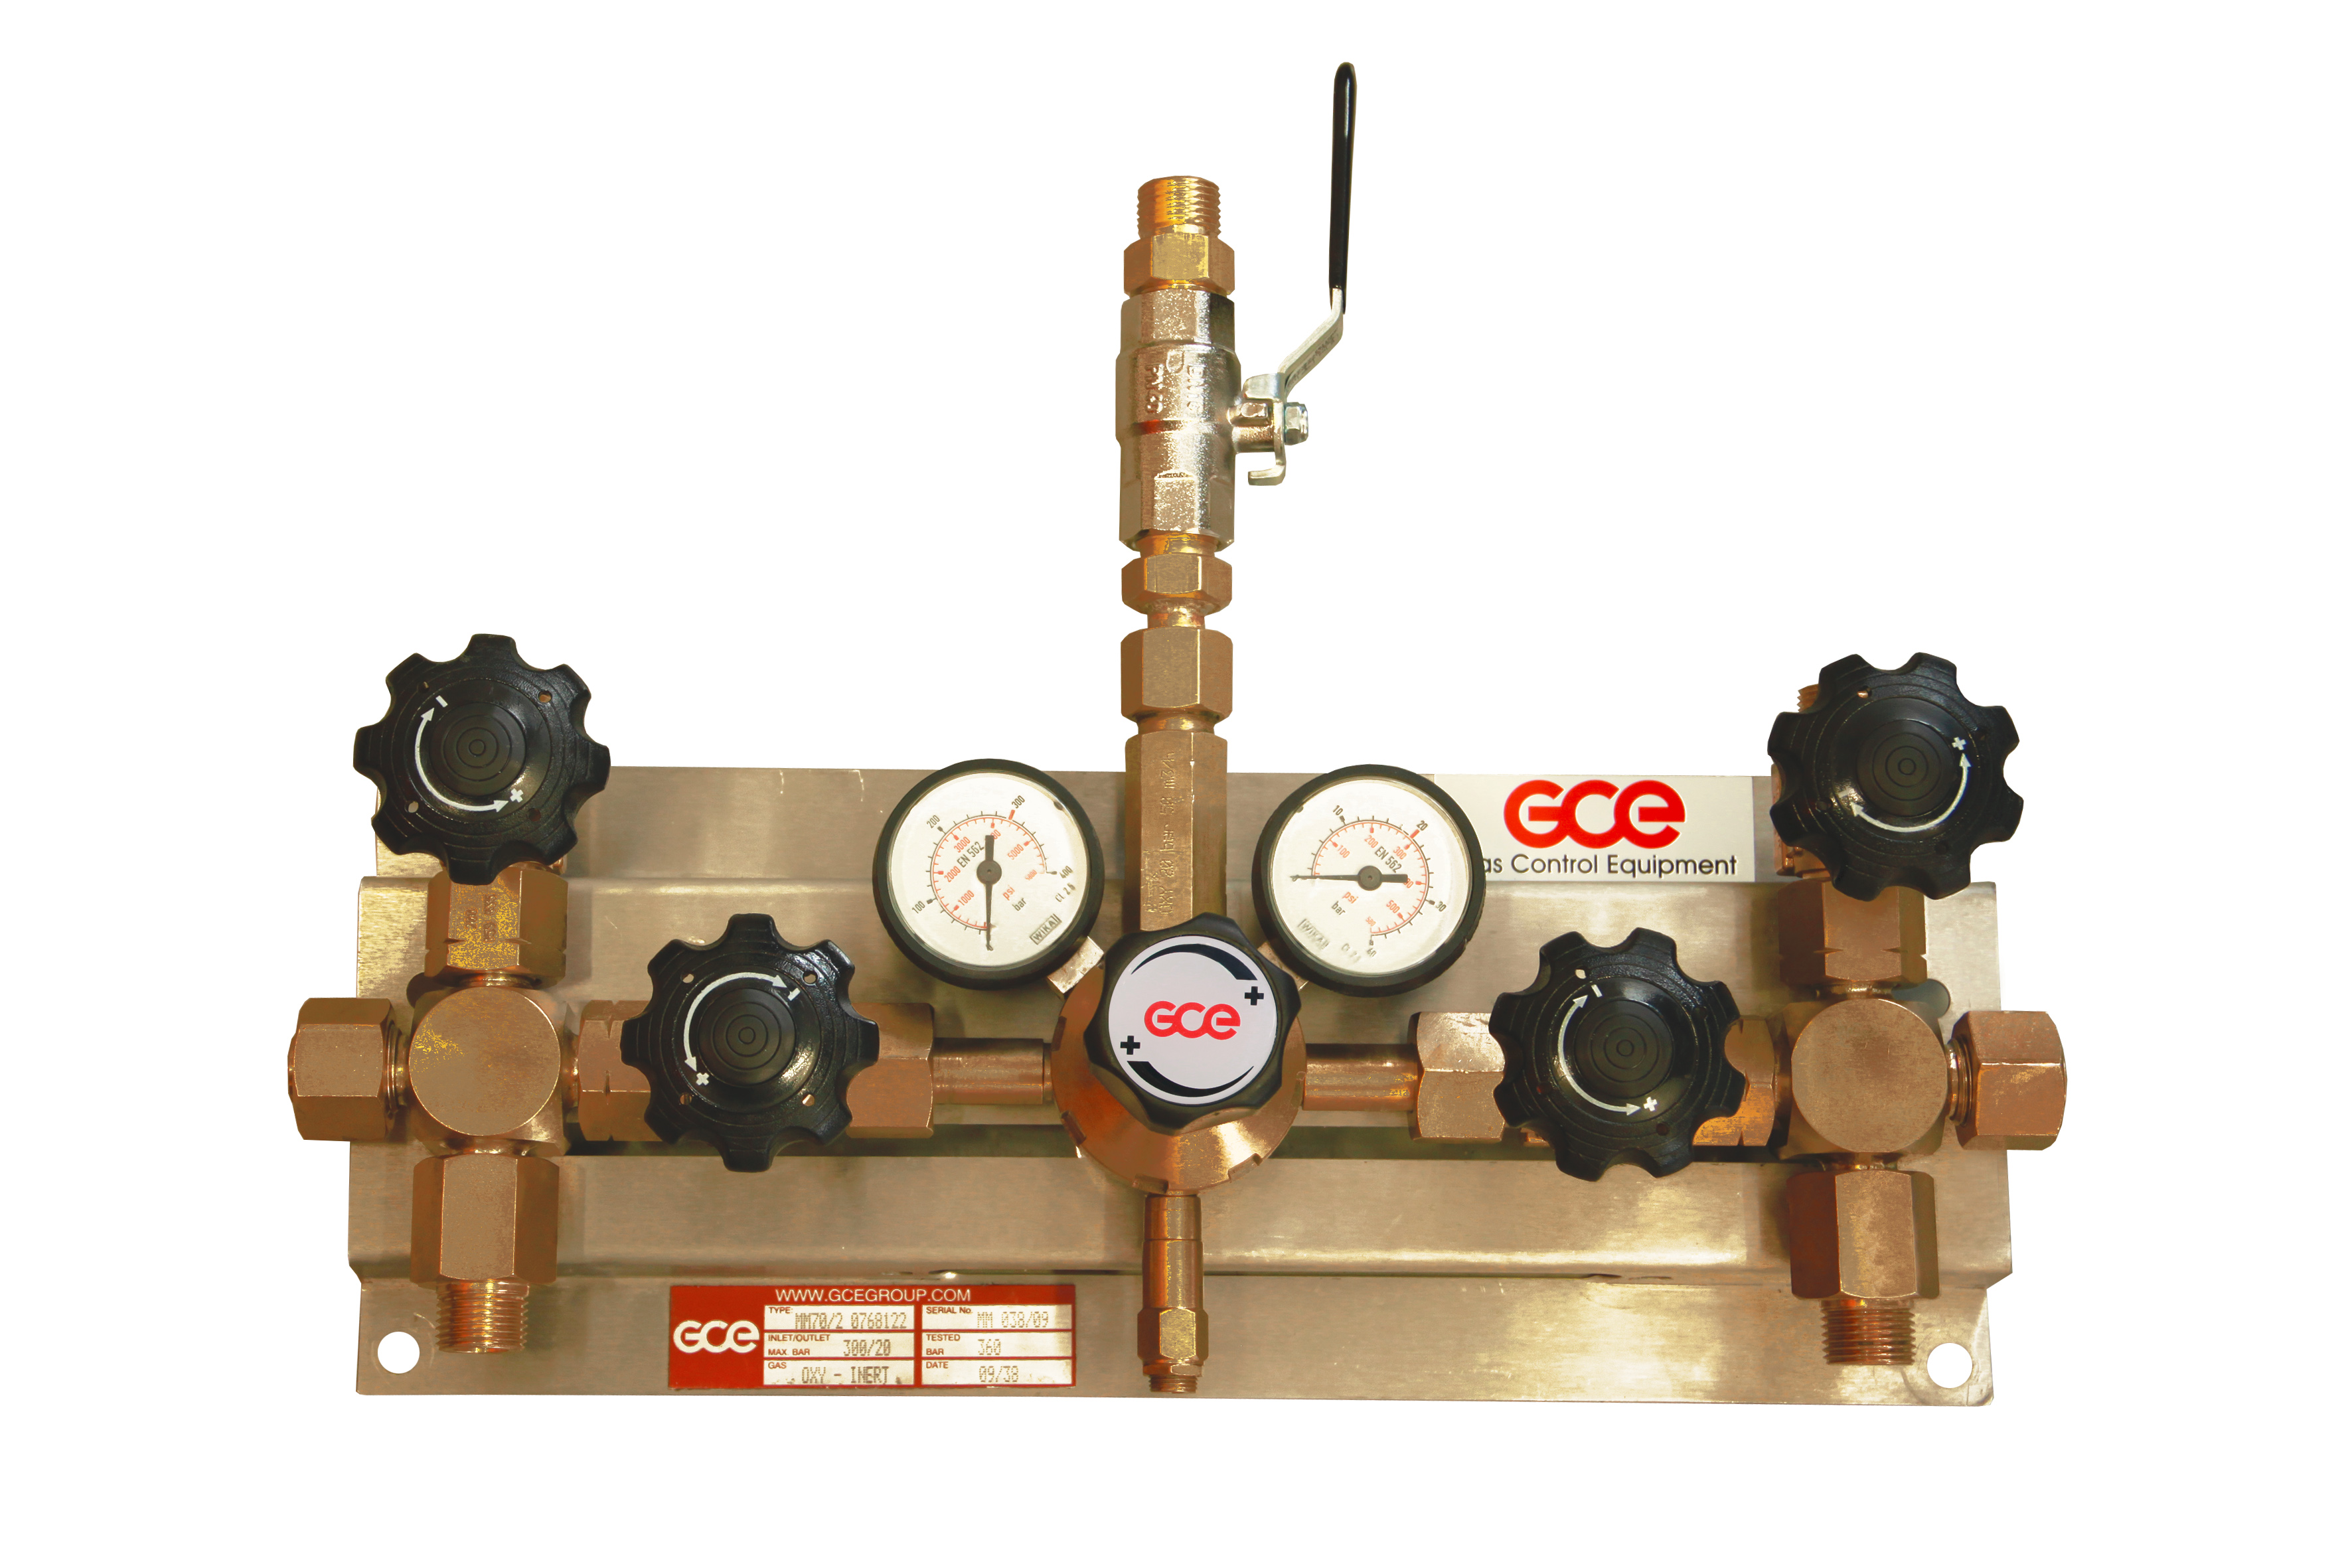 High Pressure Manifold : Mm from gce group leading manufacturer of gas flow